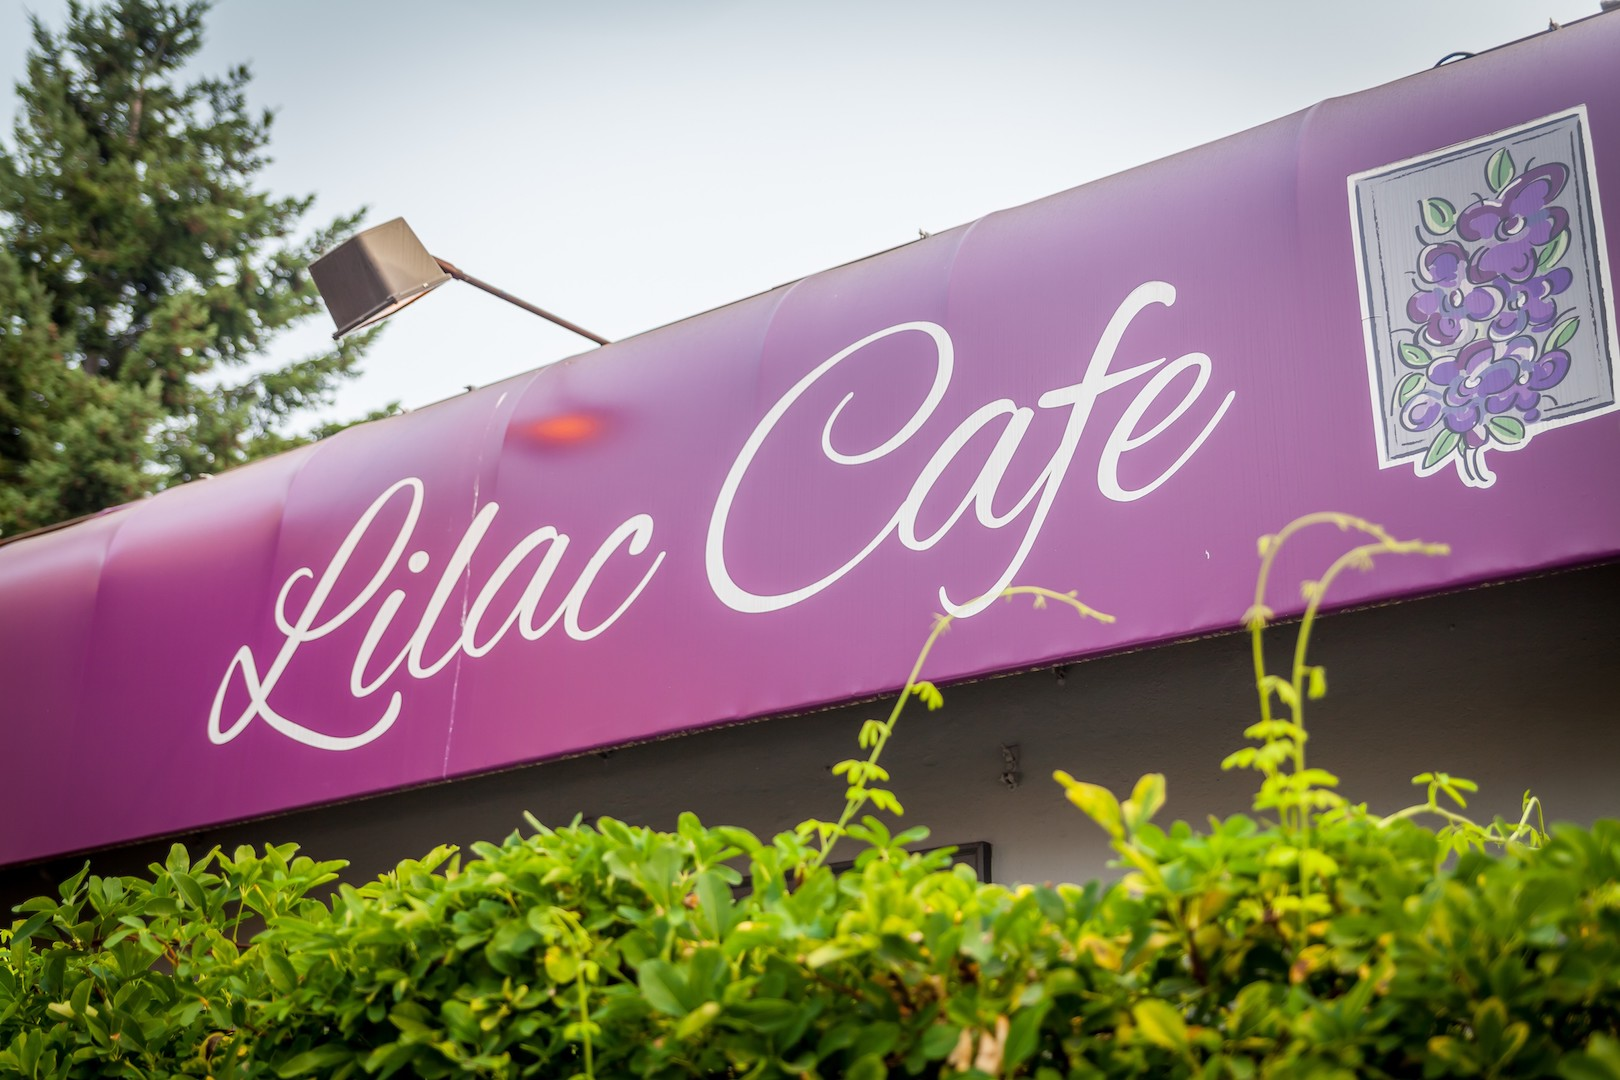 LILAC CAFE